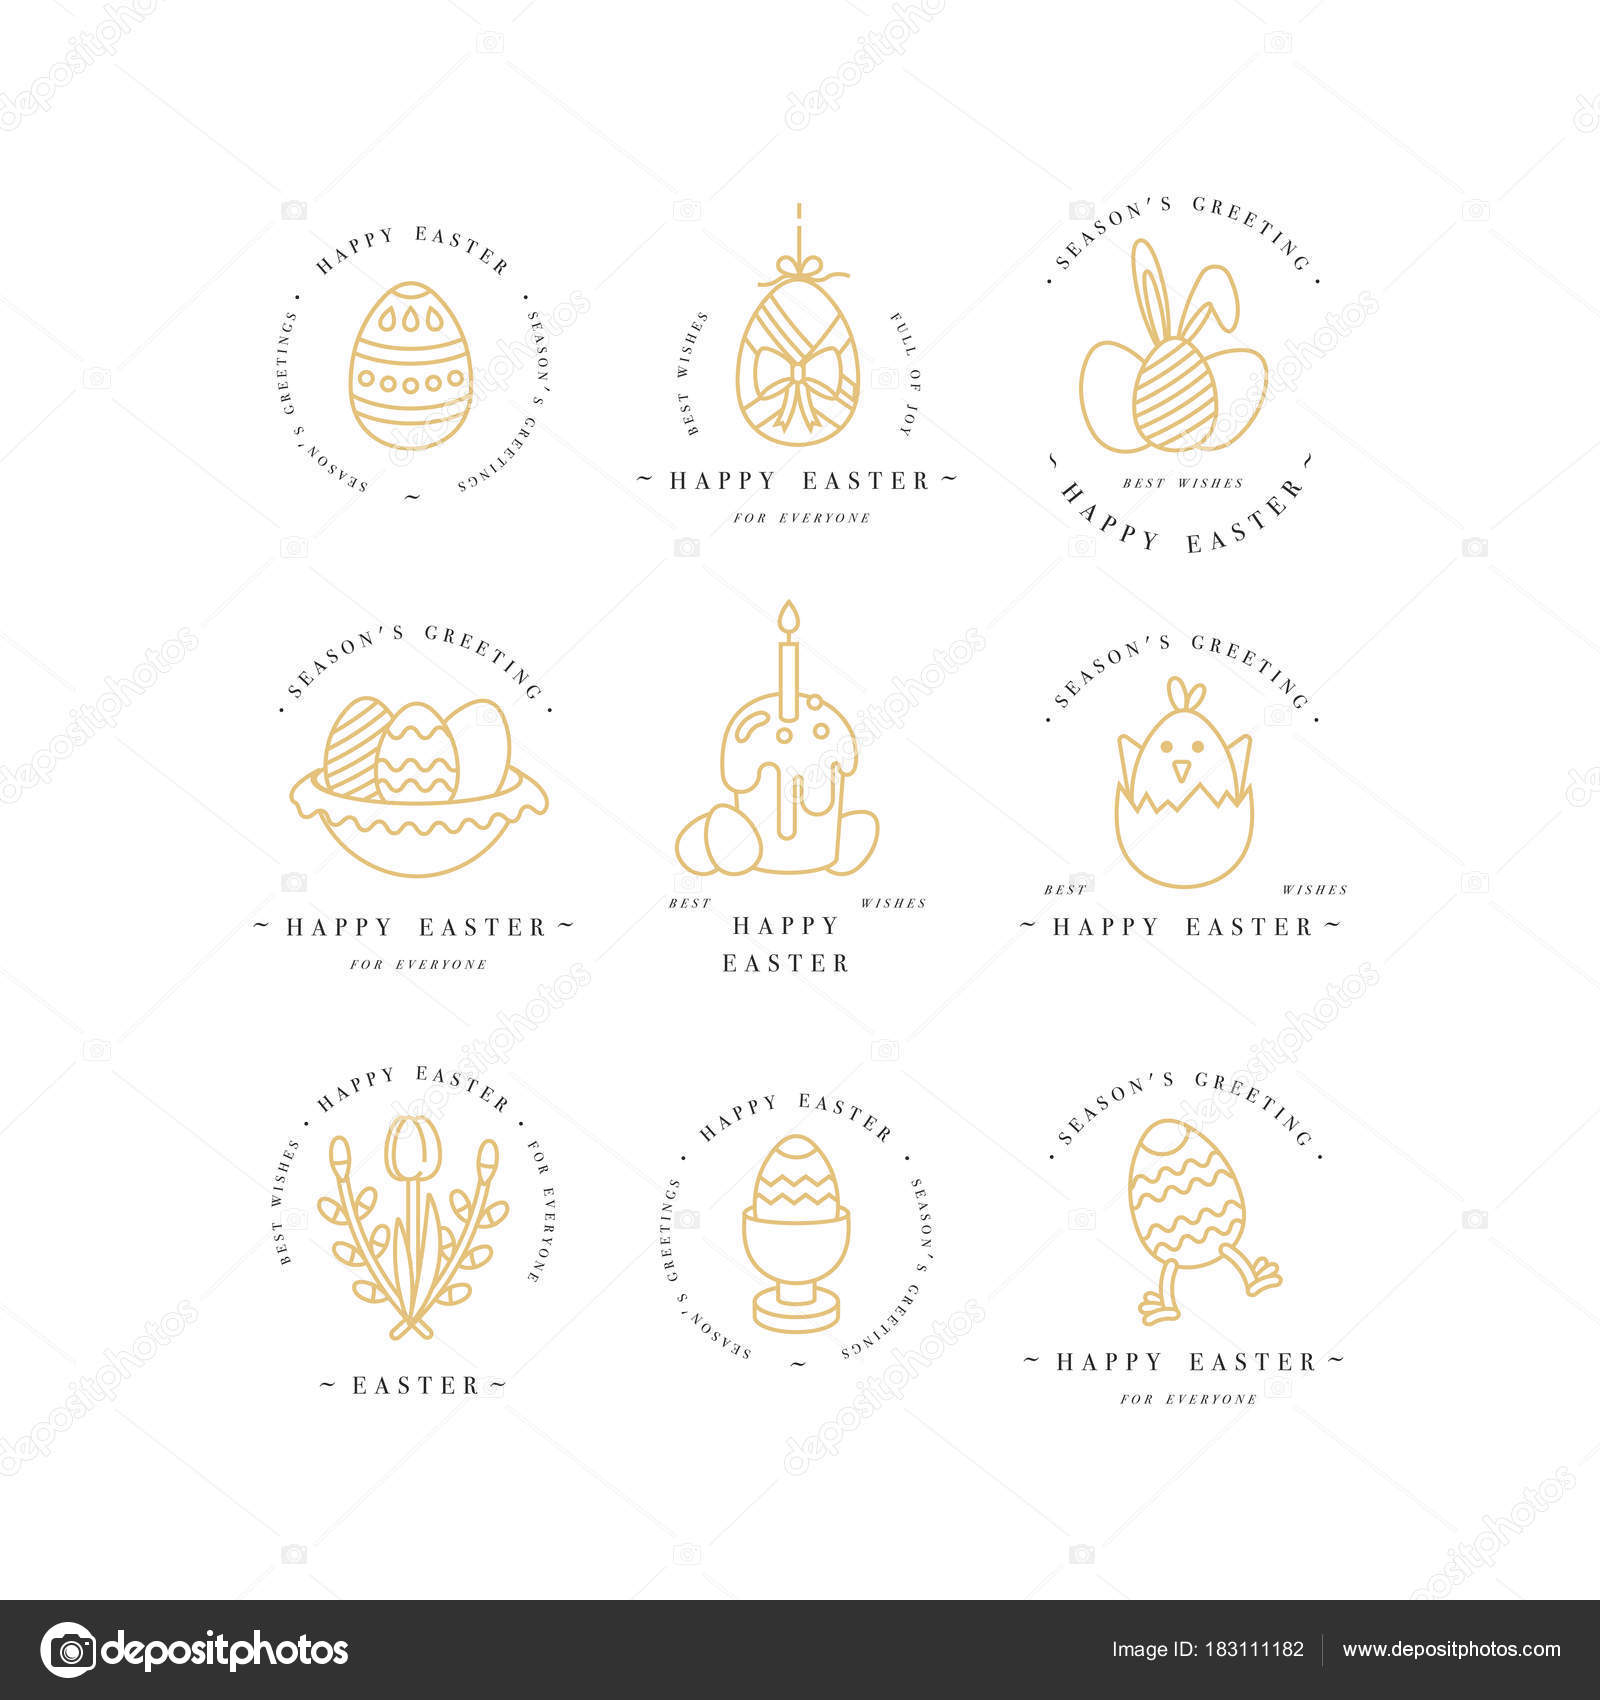 Vector linear design easter greetings elements on white background vector linear design easter greetings elements on white background typography ang icon for happy easter cards banners or posters and other printables m4hsunfo